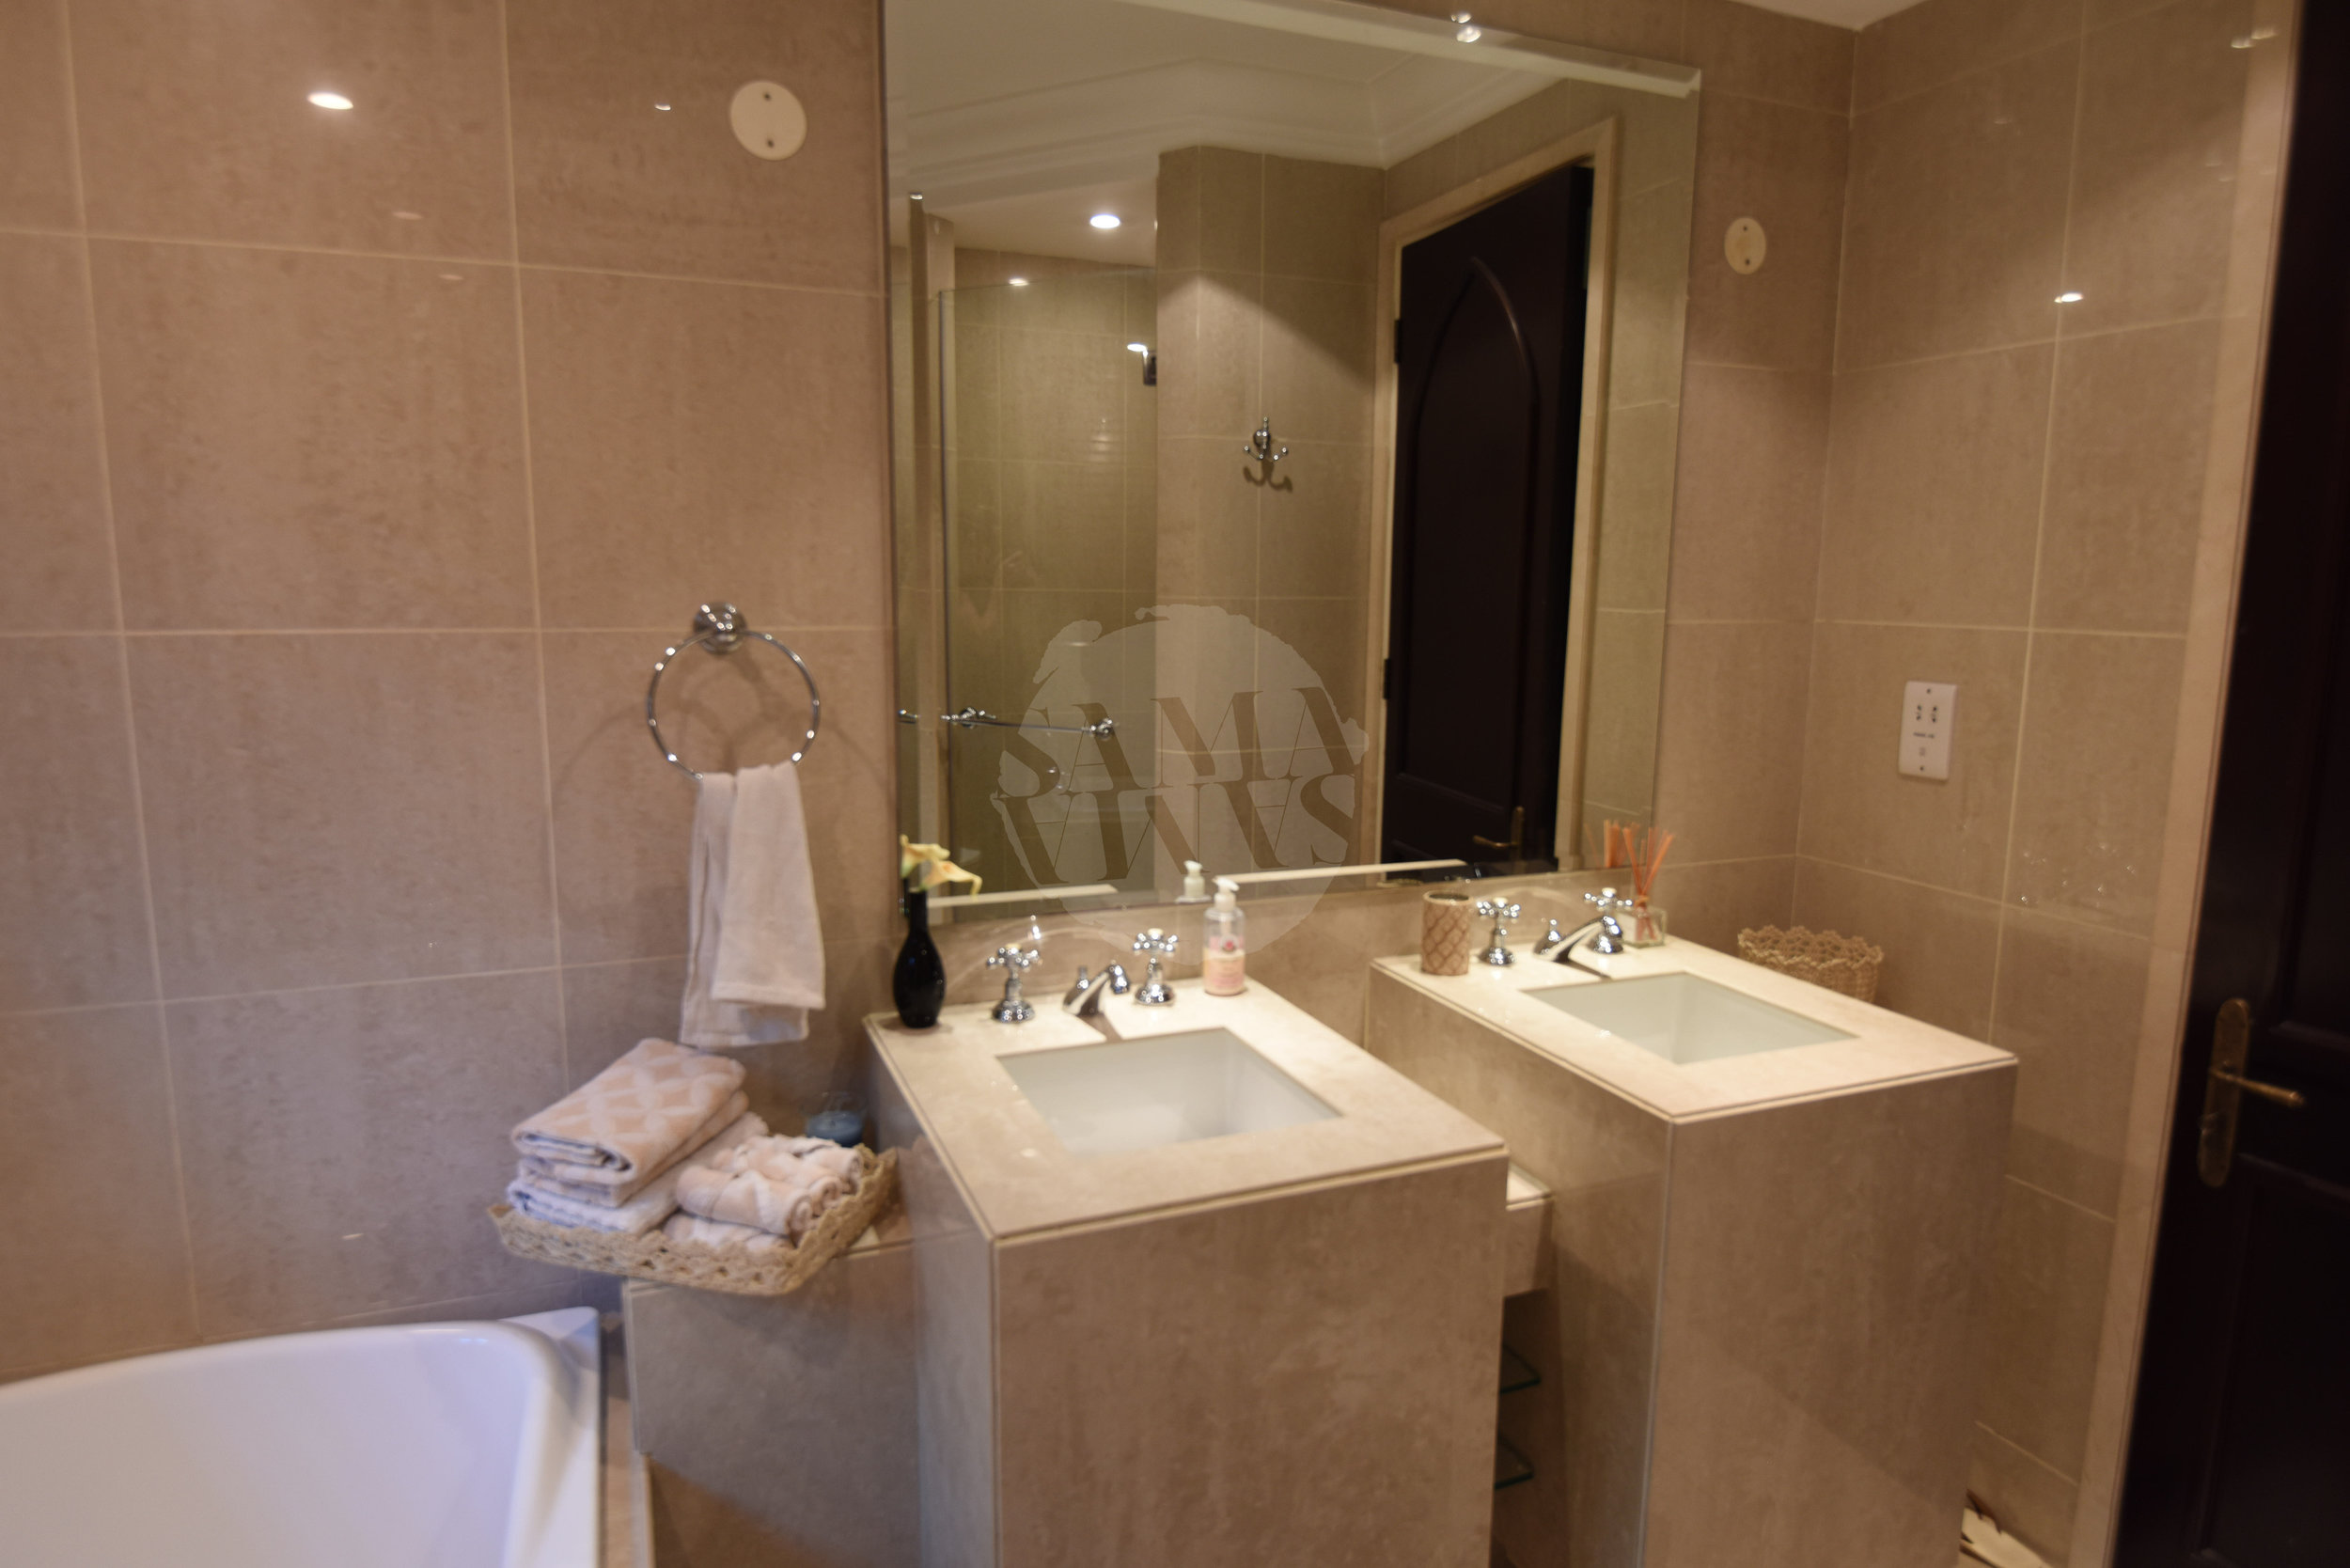 The ensuite is complete with His and Hers sinks, luxurious bath & seperate rain-shower